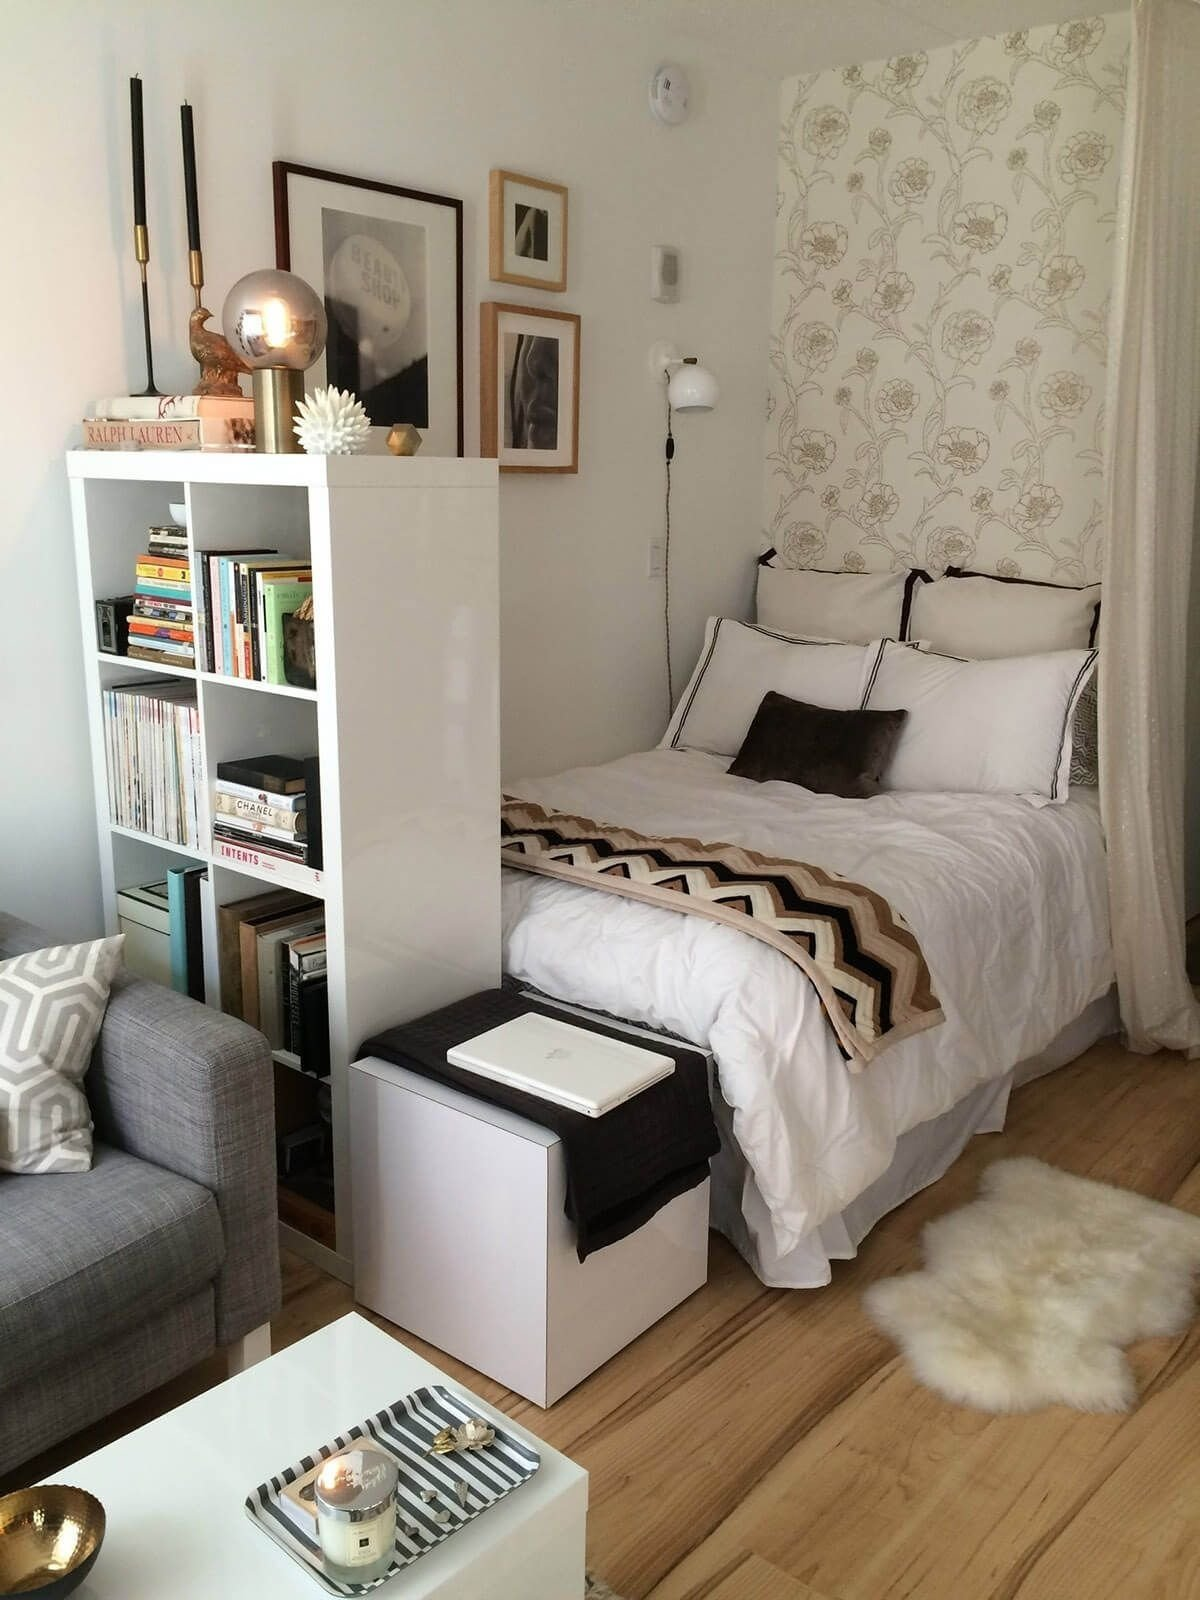 10 Pretty Room Decor Ideas For Small Rooms 37 small bedroom designs and ideas for maximizing your small space 8 2020